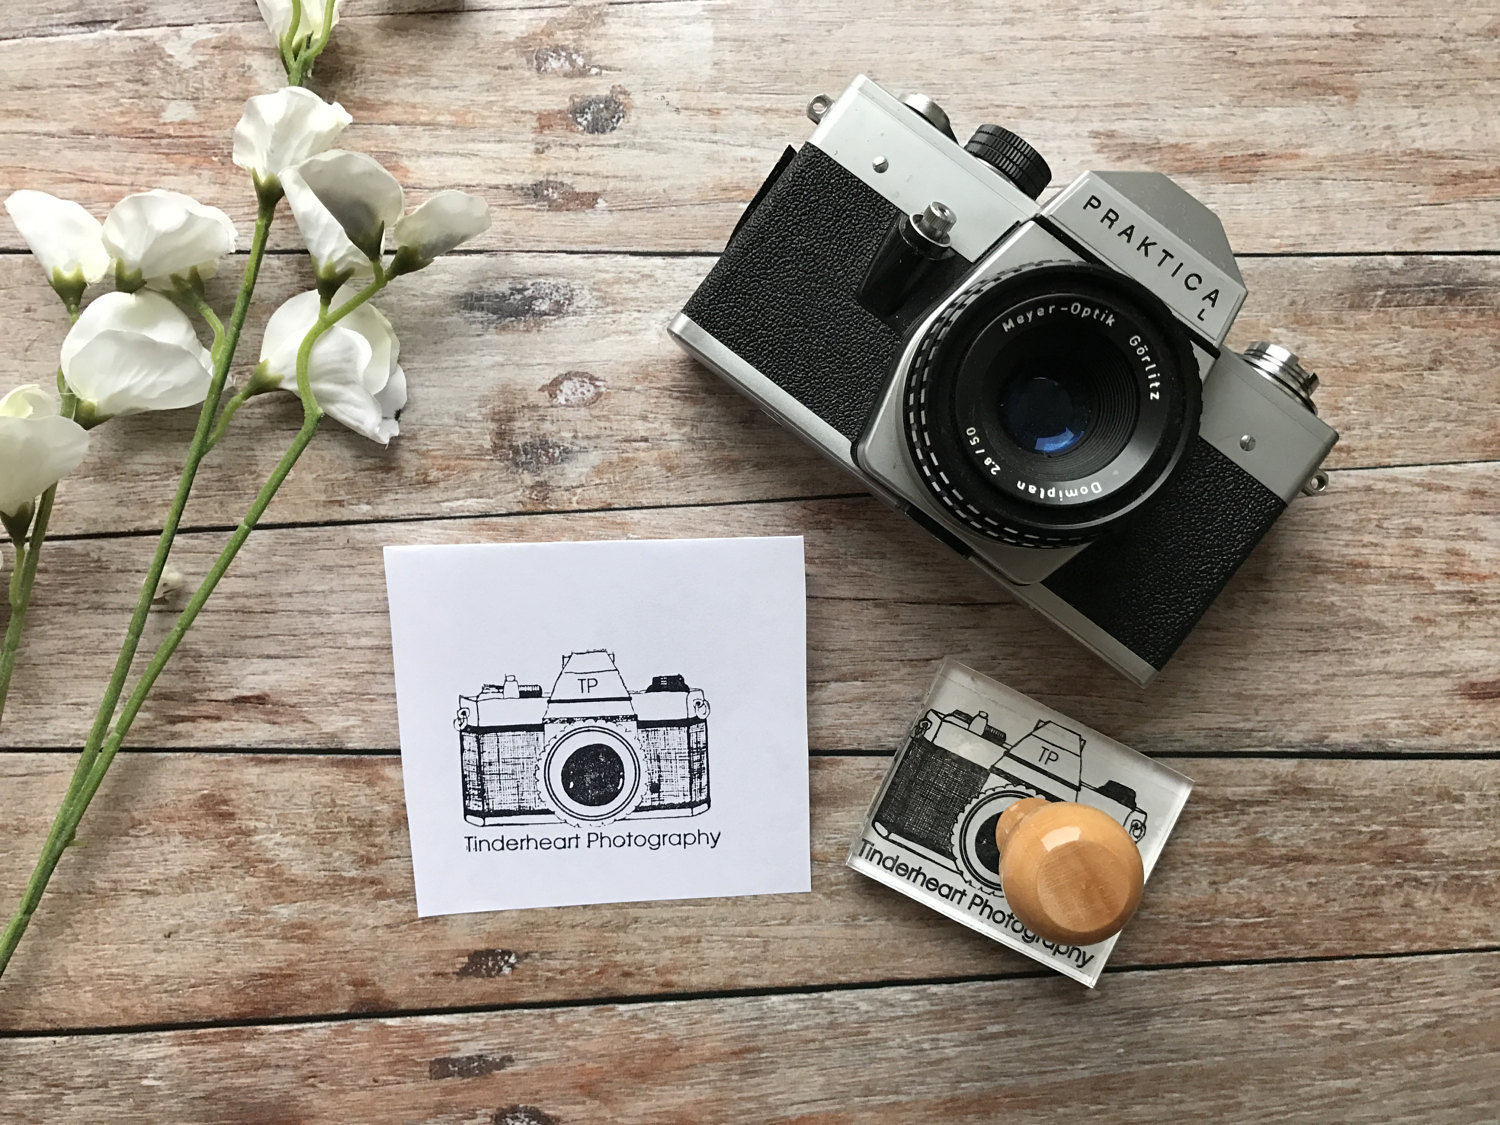 Photographer stamp on photos Surf culture - Wikipedia